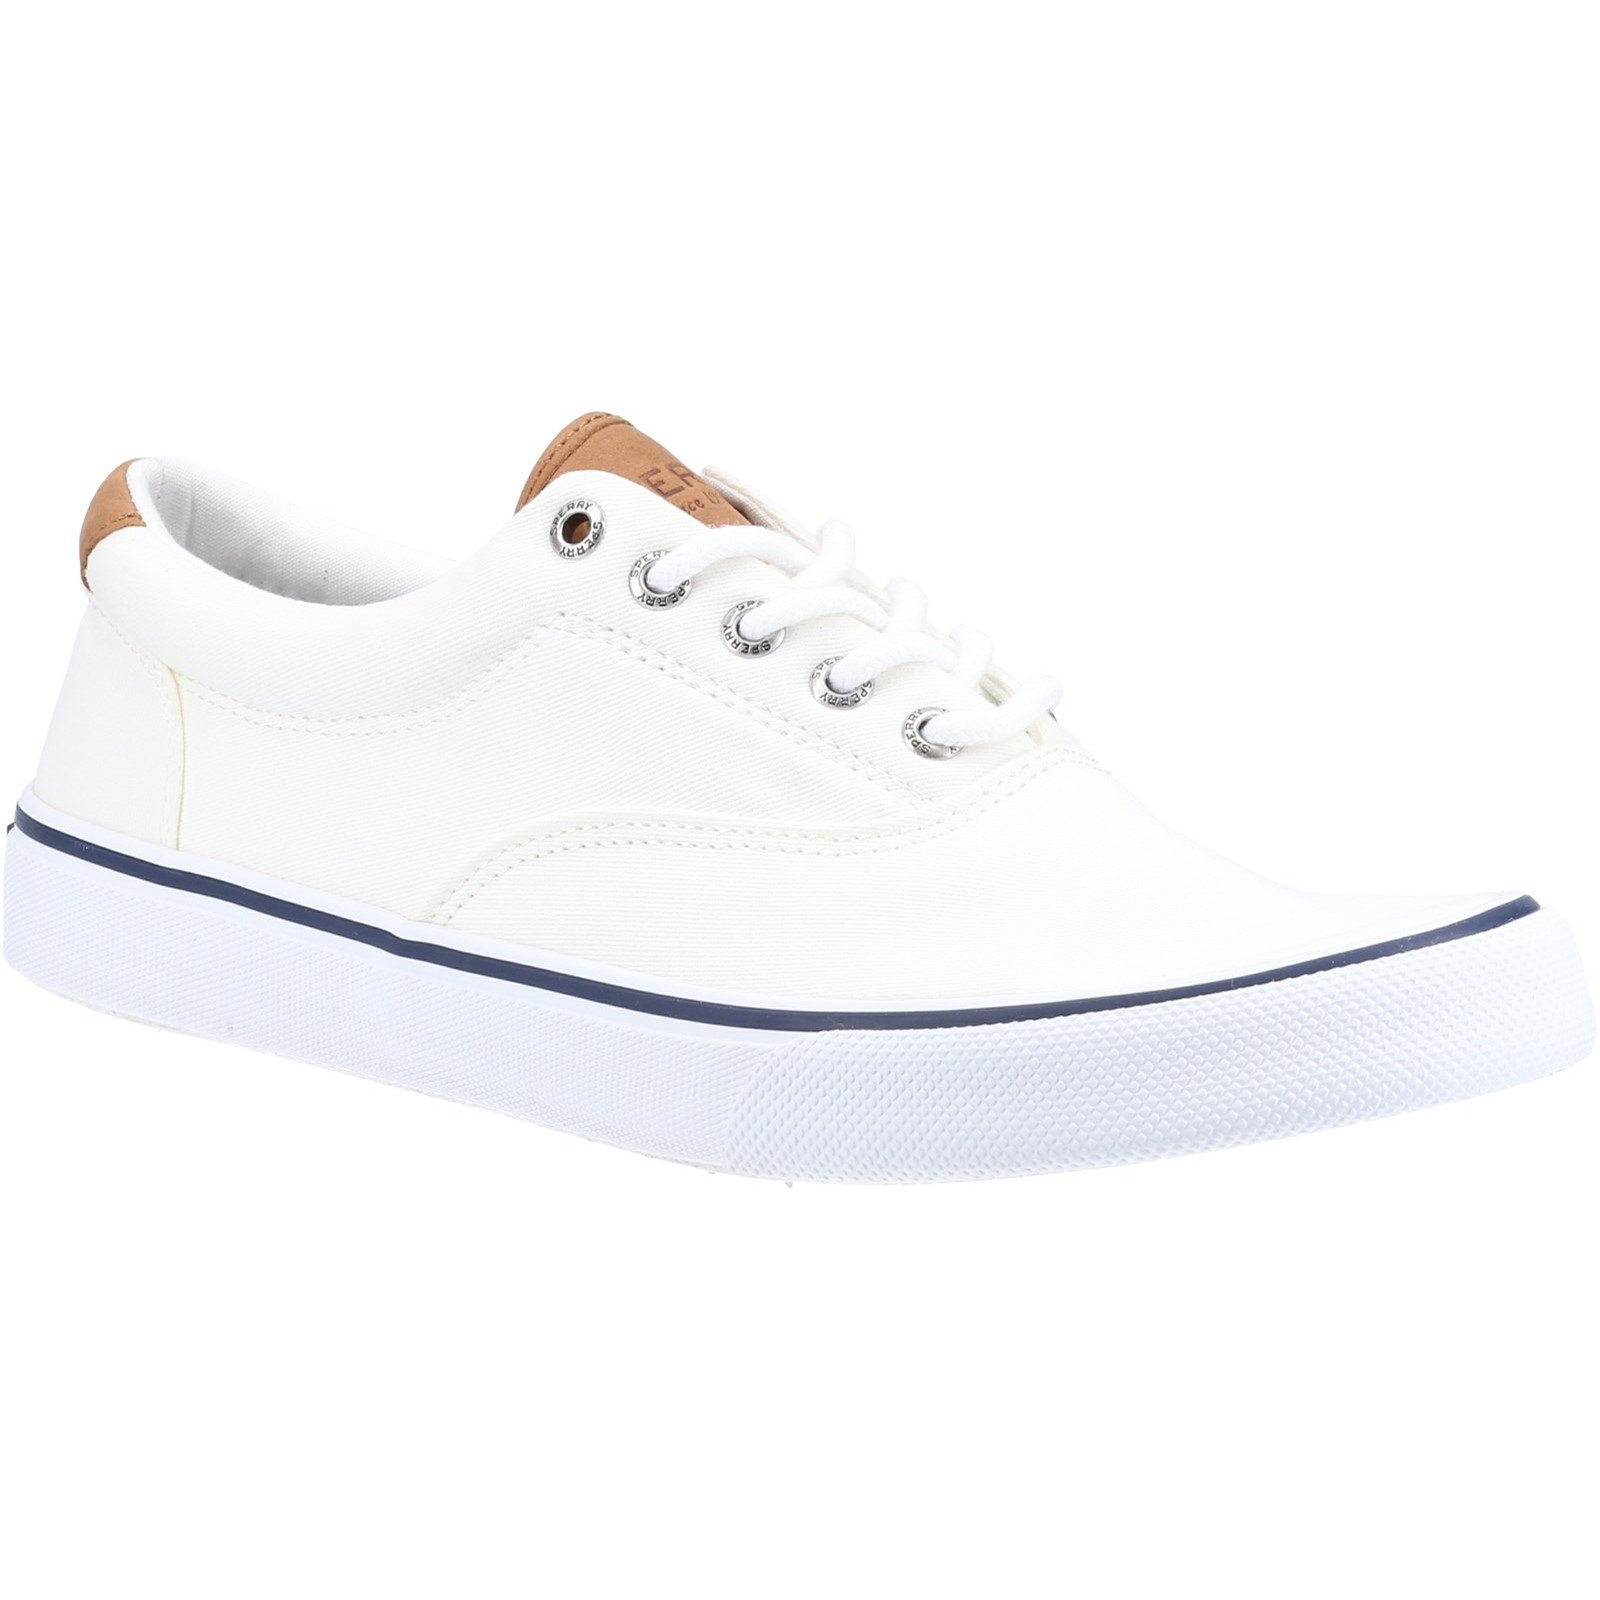 Sperry Men's Striper II CVO Canvas Trainers Various Colours 32397 - Salt Washed White 11